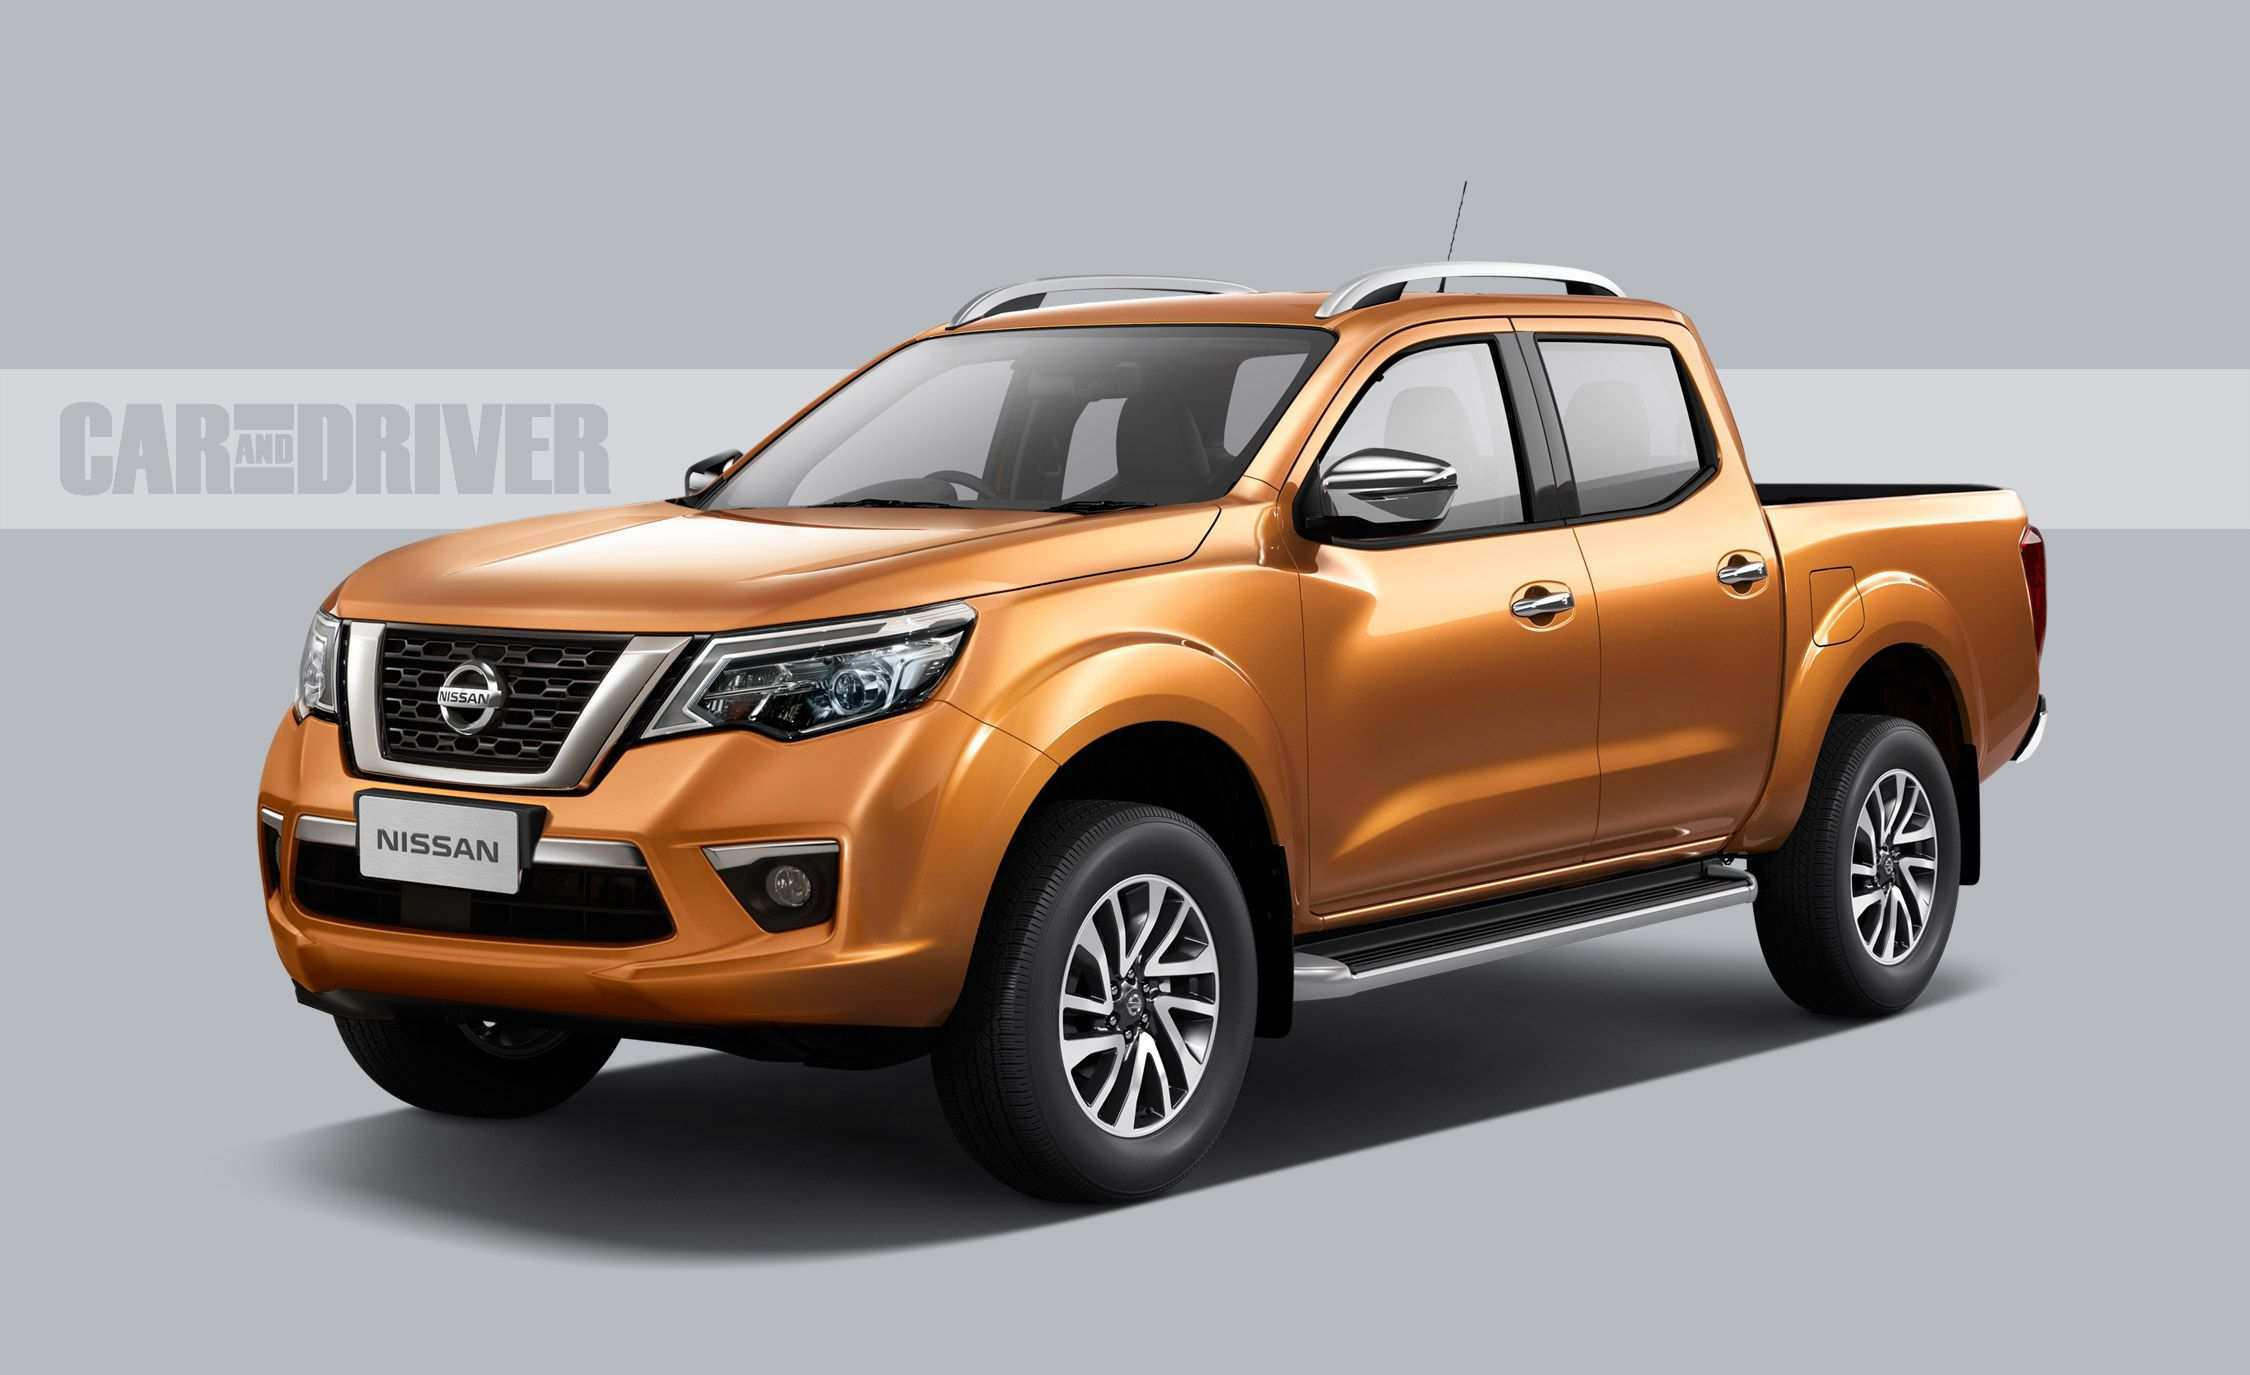 84 Gallery of 2019 Nissan Frontier Specs Exterior with 2019 Nissan Frontier Specs